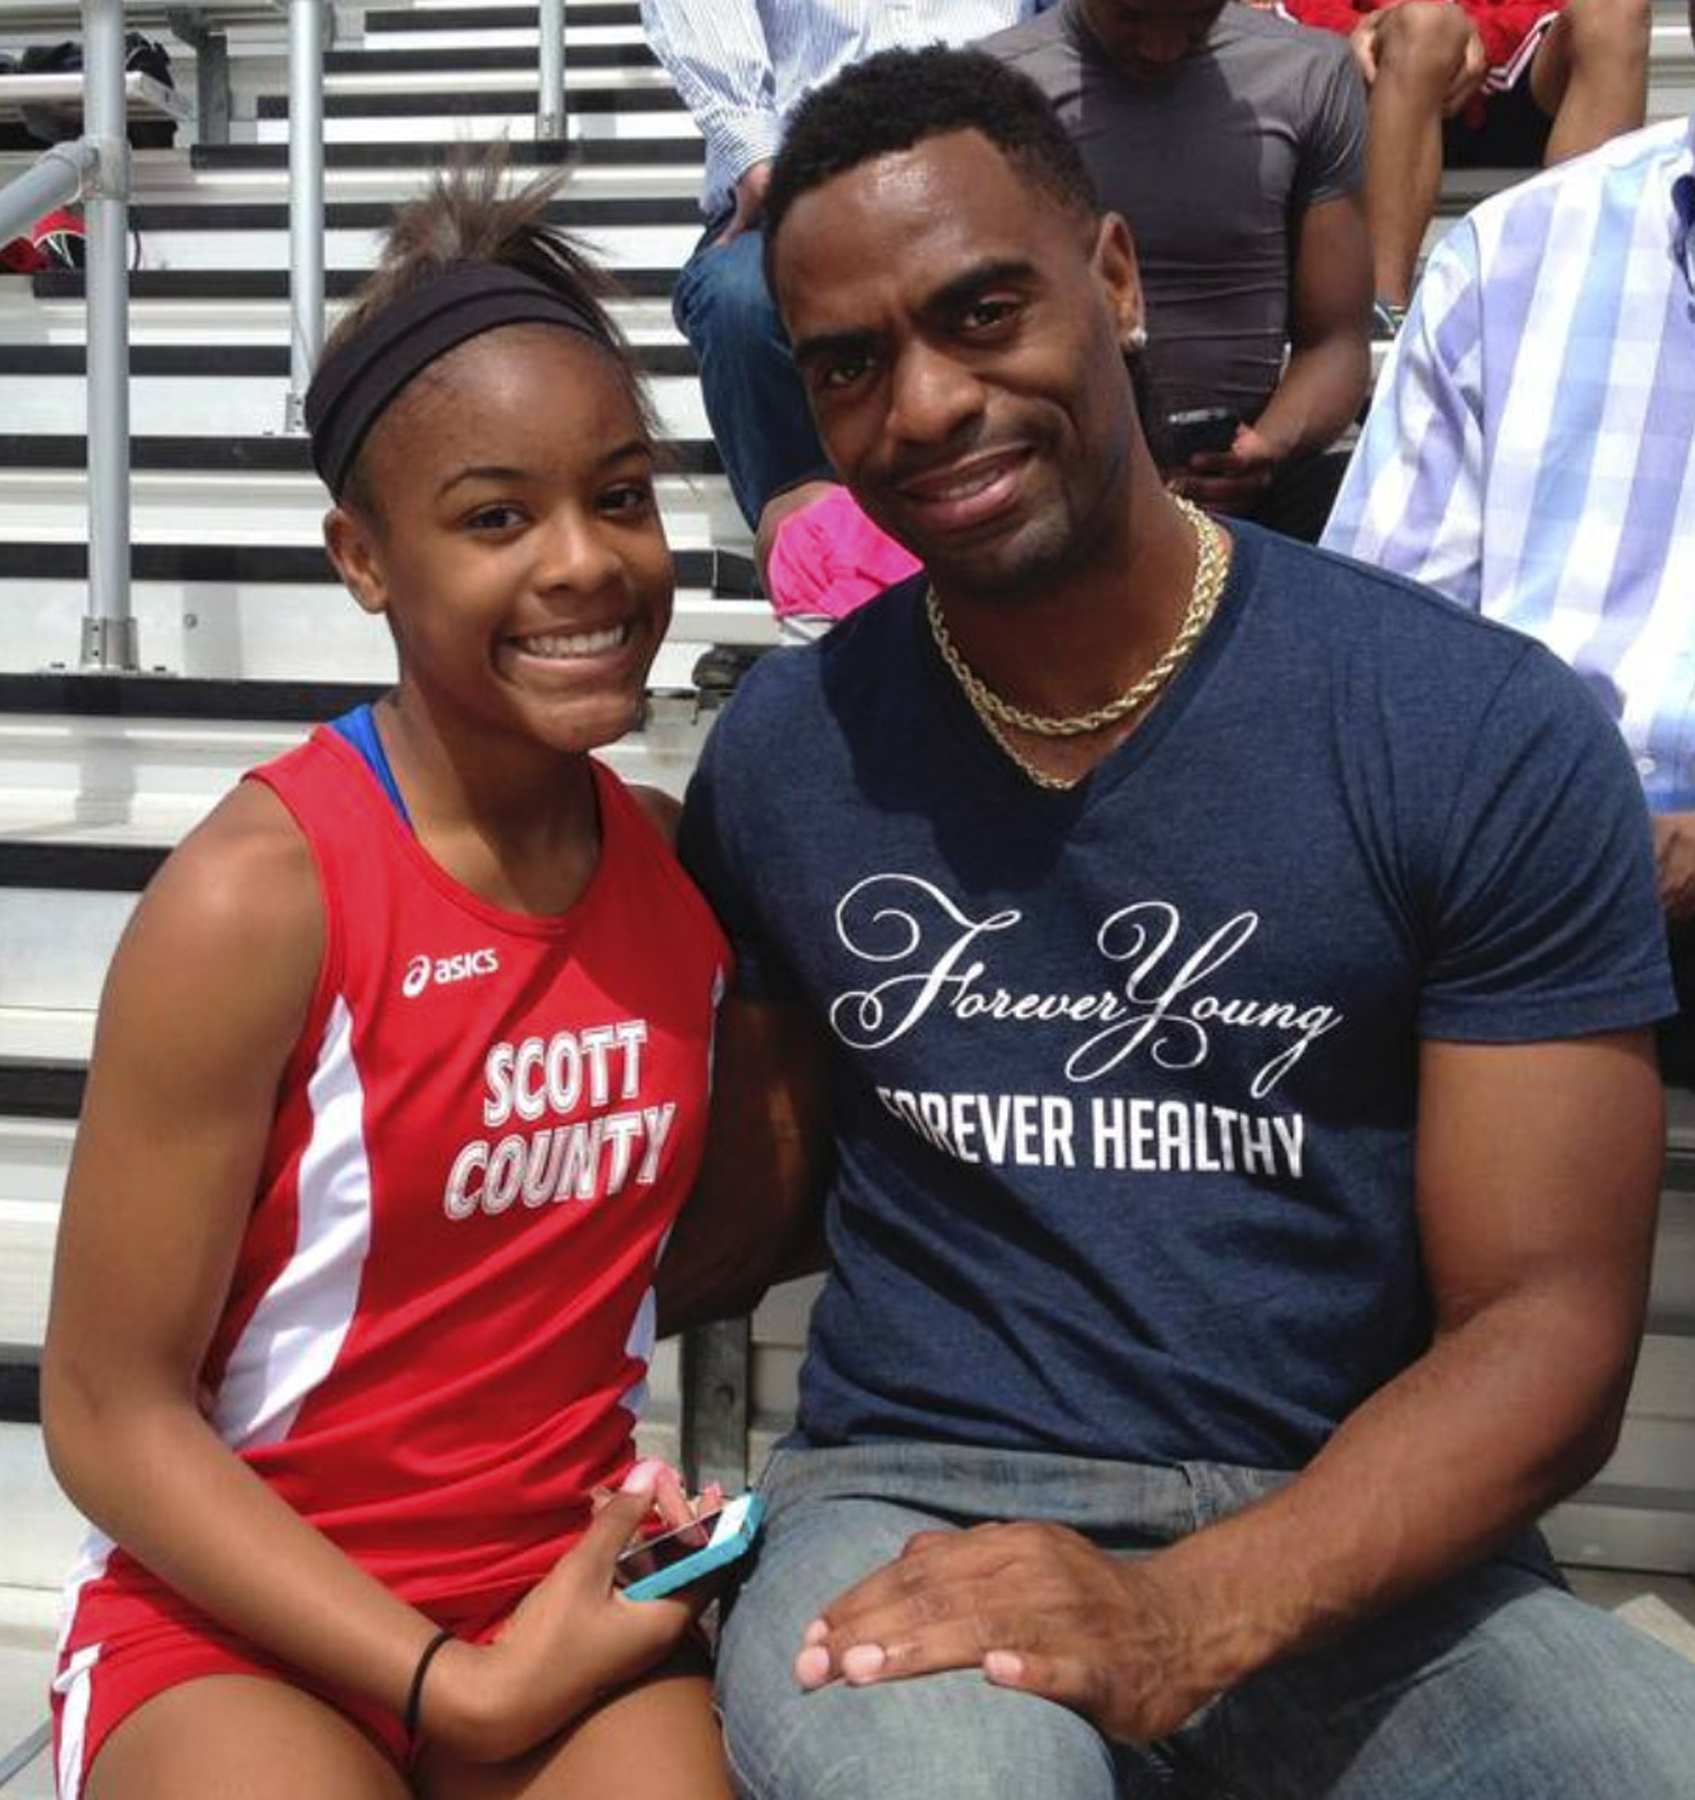 Trinity Gay, a seventh-grader at the time racing for her Scott County High School team, poses for a photo with her father Tyson Gay. (Photo: Mark Maloney, AP)